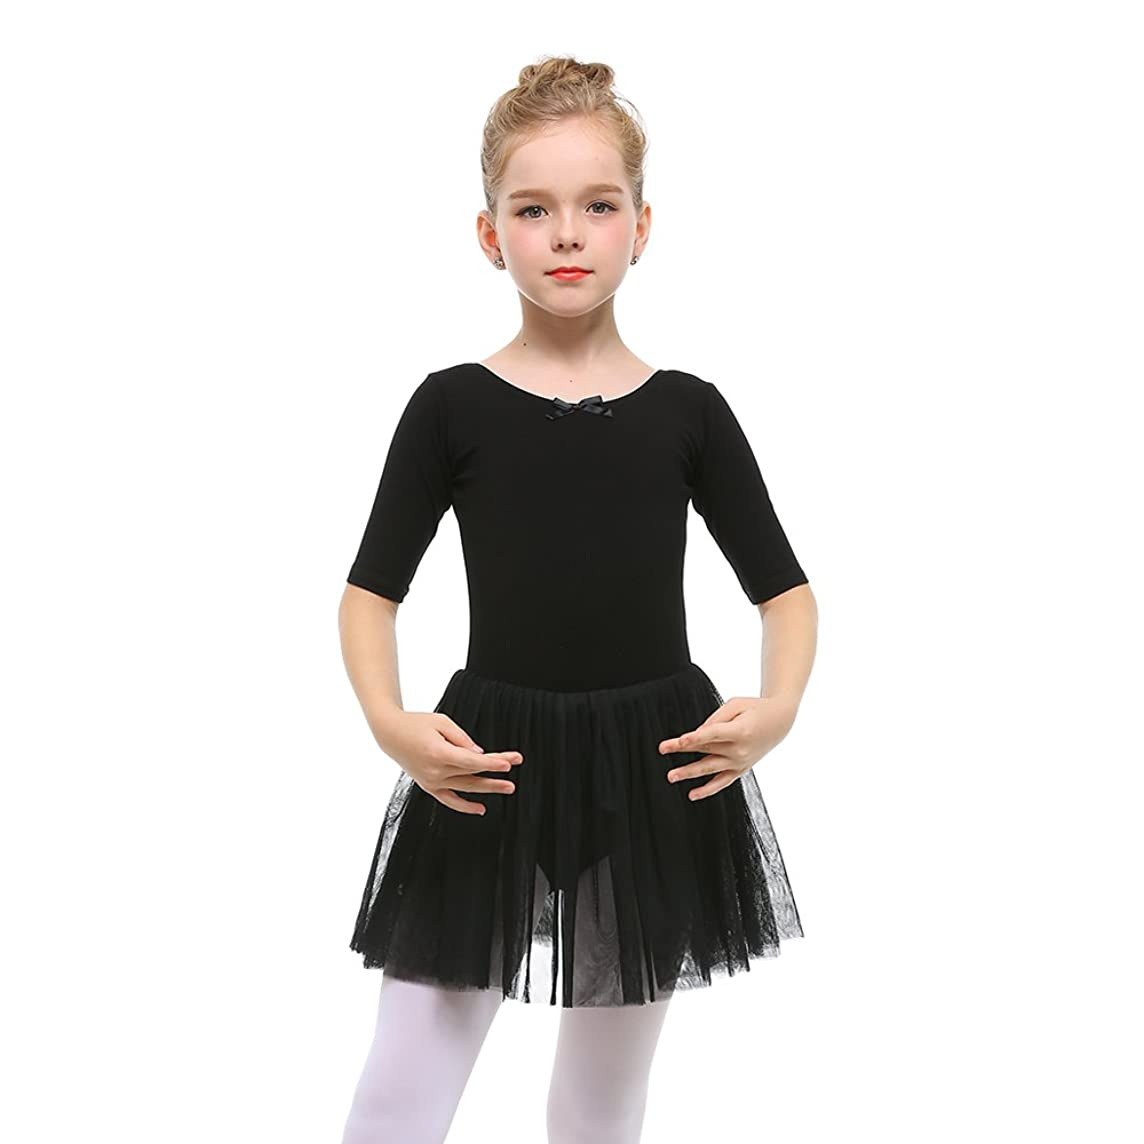 STELLE Toddler/Girls Cute Tutu Dress Leotard for Dance, Gymnastics and Ballet